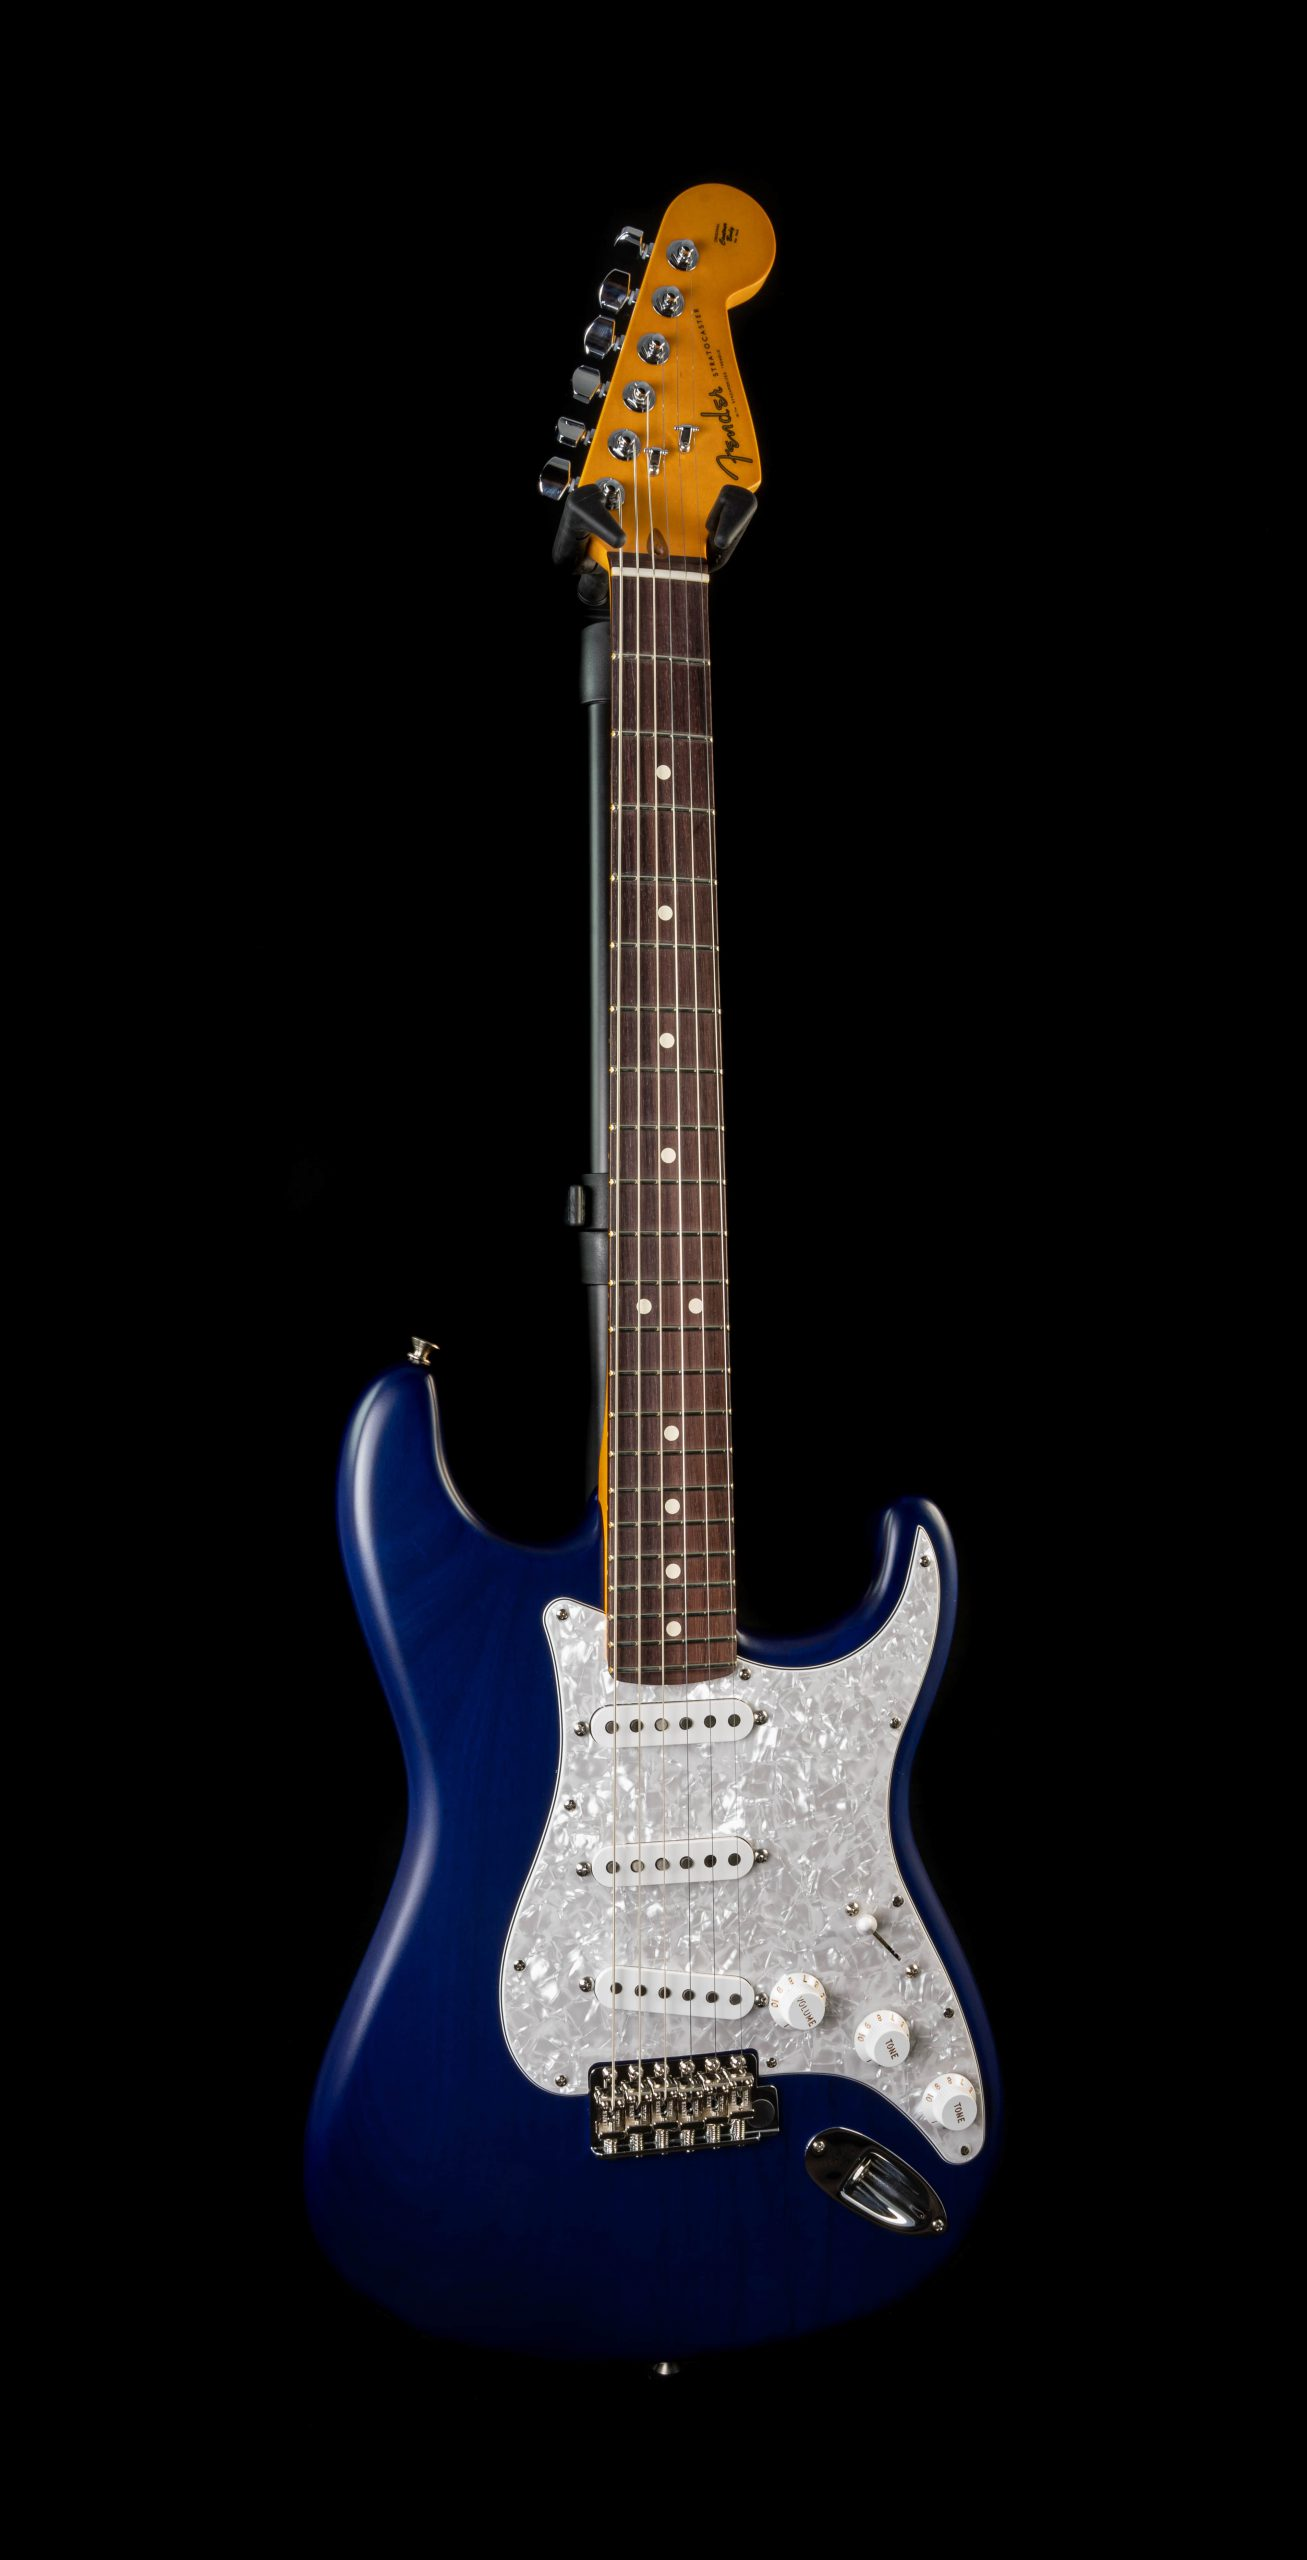 Fender Cory Wong Stratocaster in Sapphire Blue Transparent